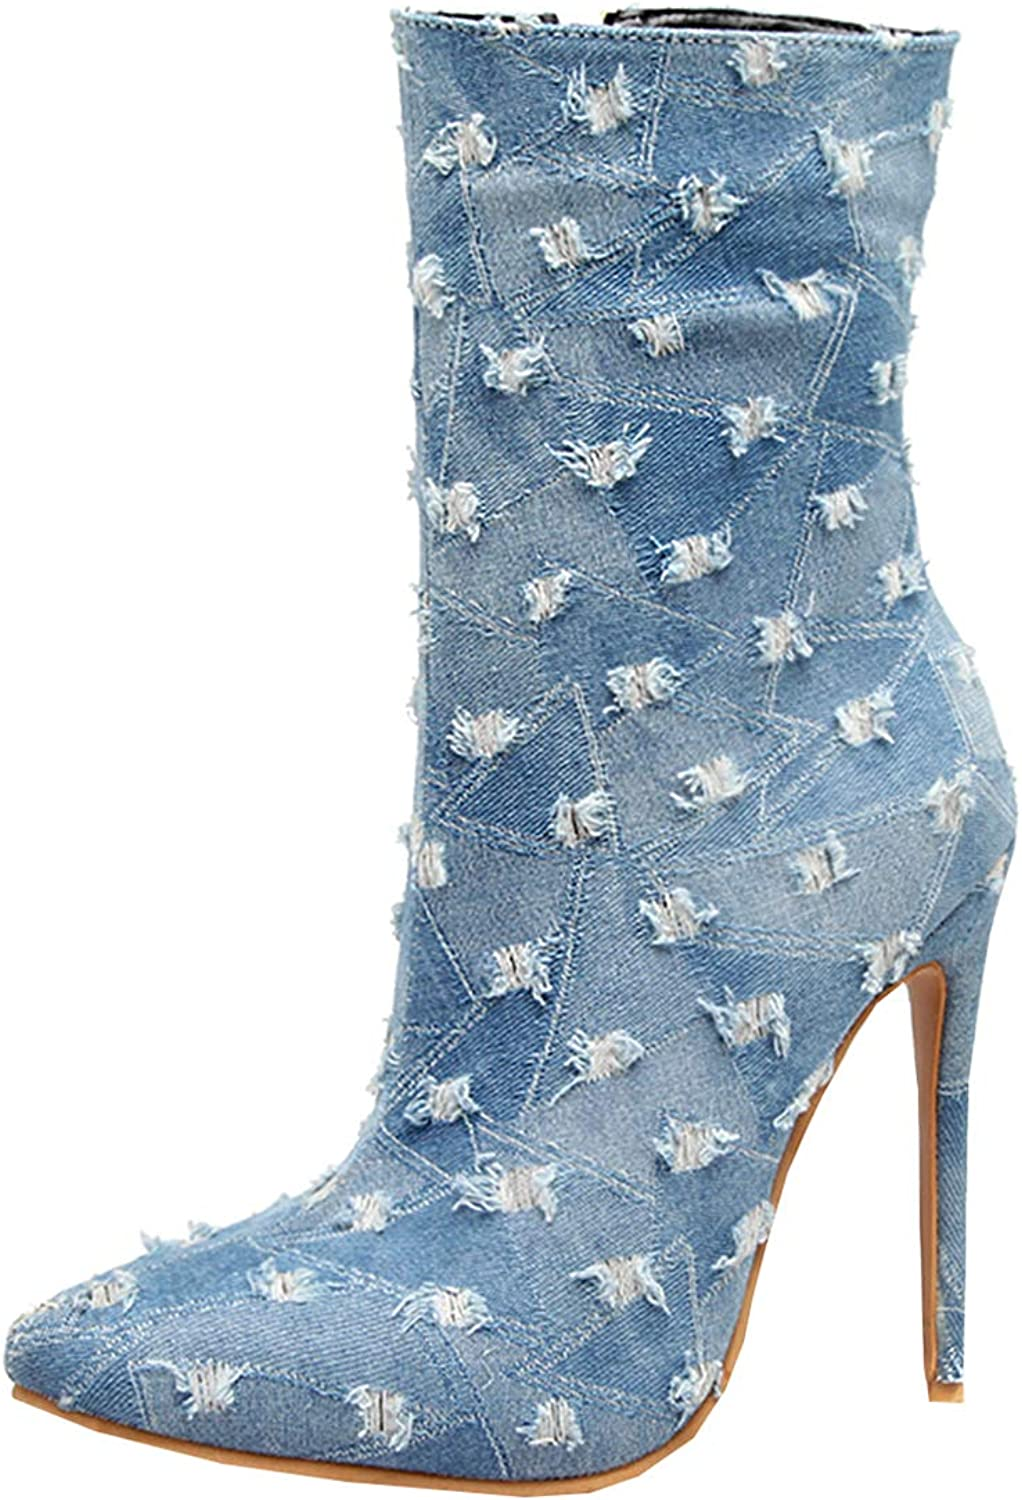 Artfaerie Womens Denim Ankle Boots Stiletto High Heel Canvas Booties Pointed Toe Casual Party Ladies shoes